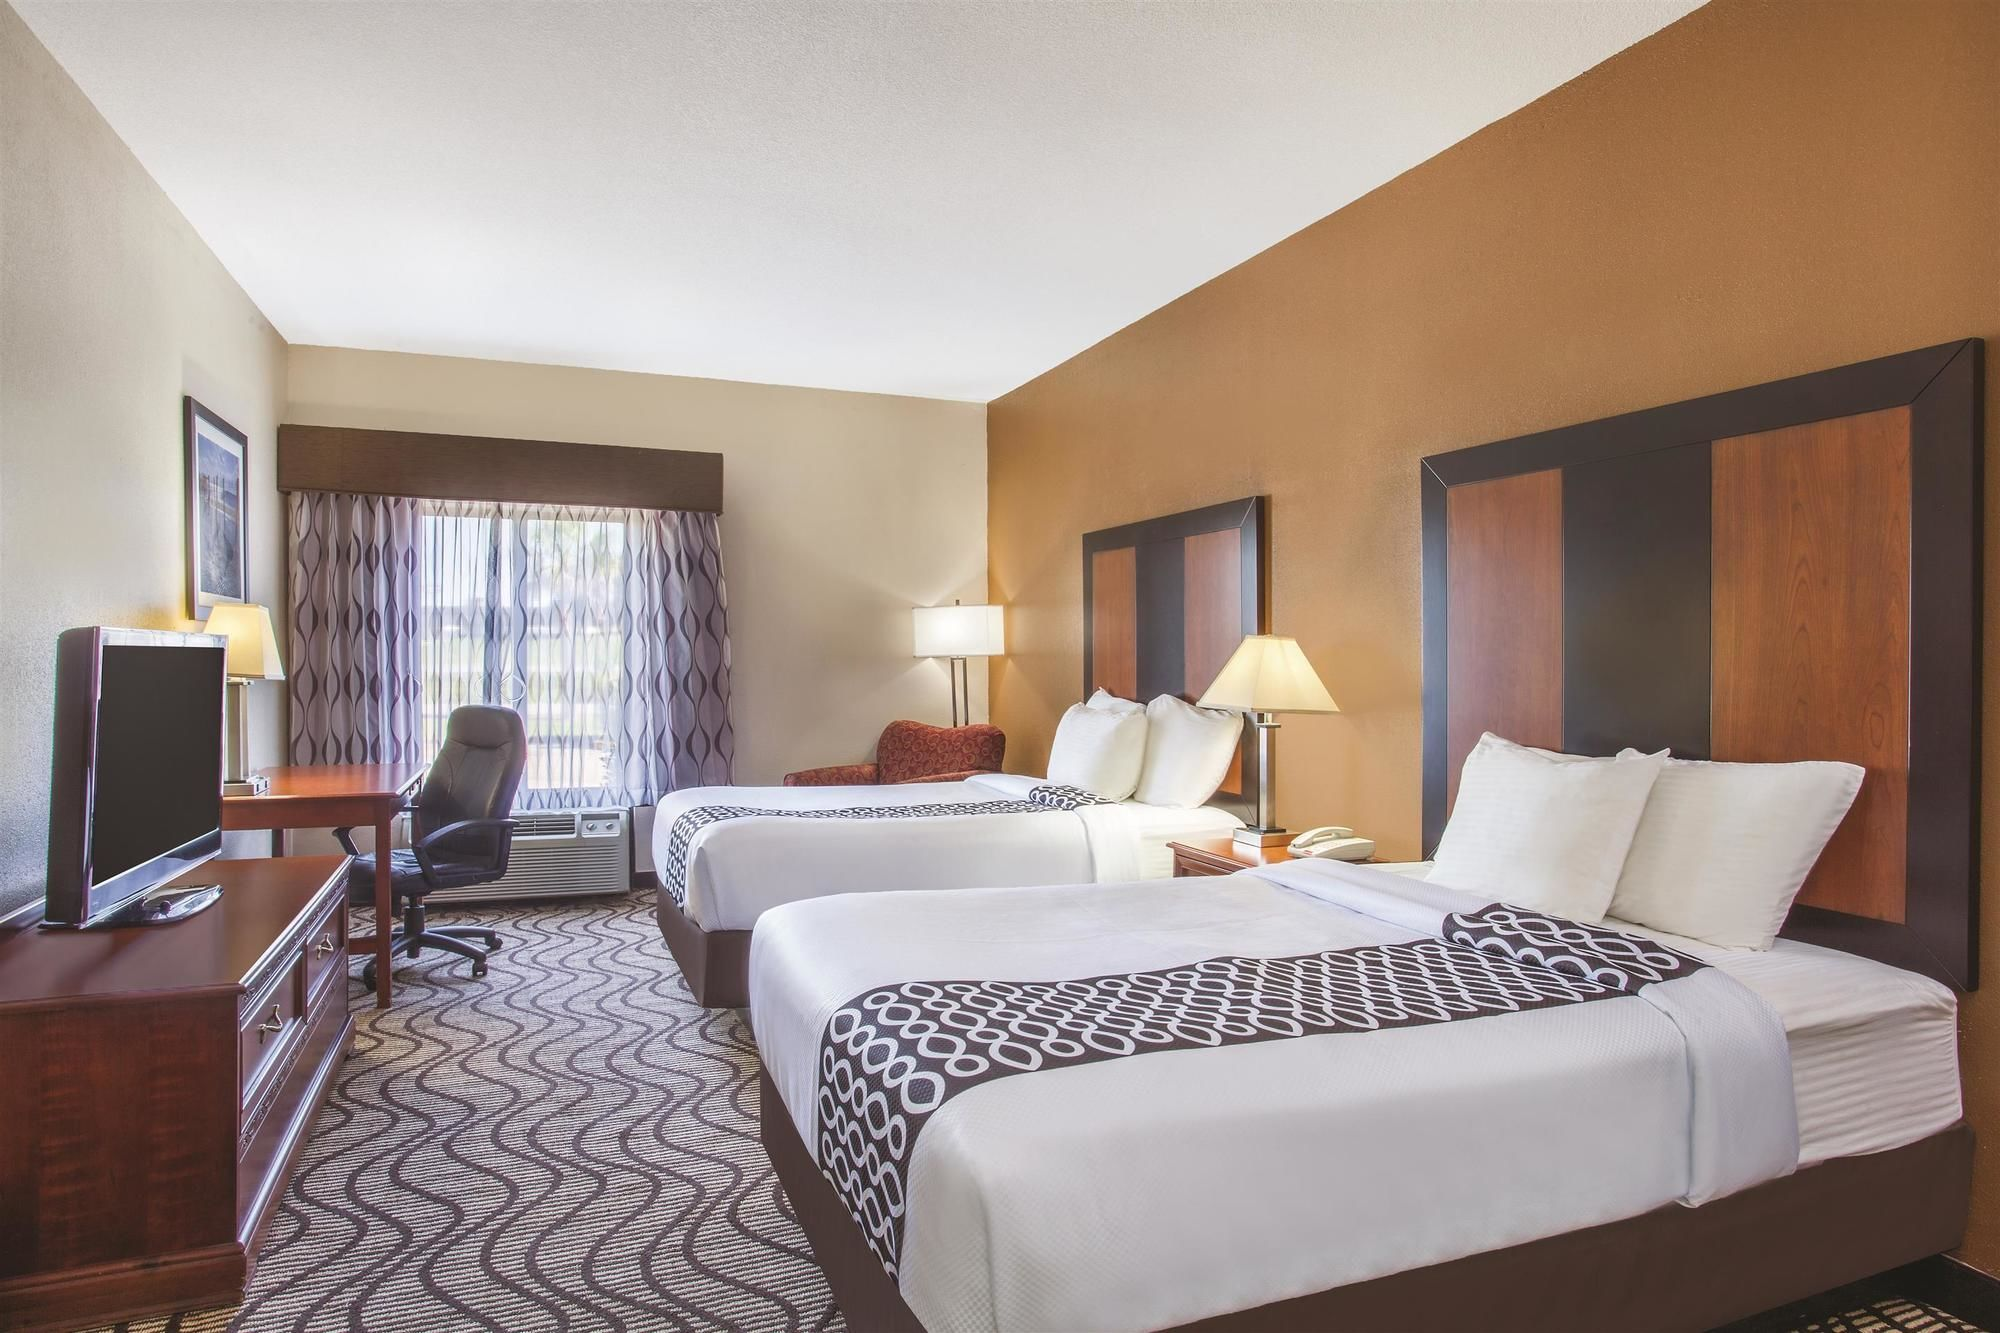 La Quinta Inn Moss Point - Pascagoula